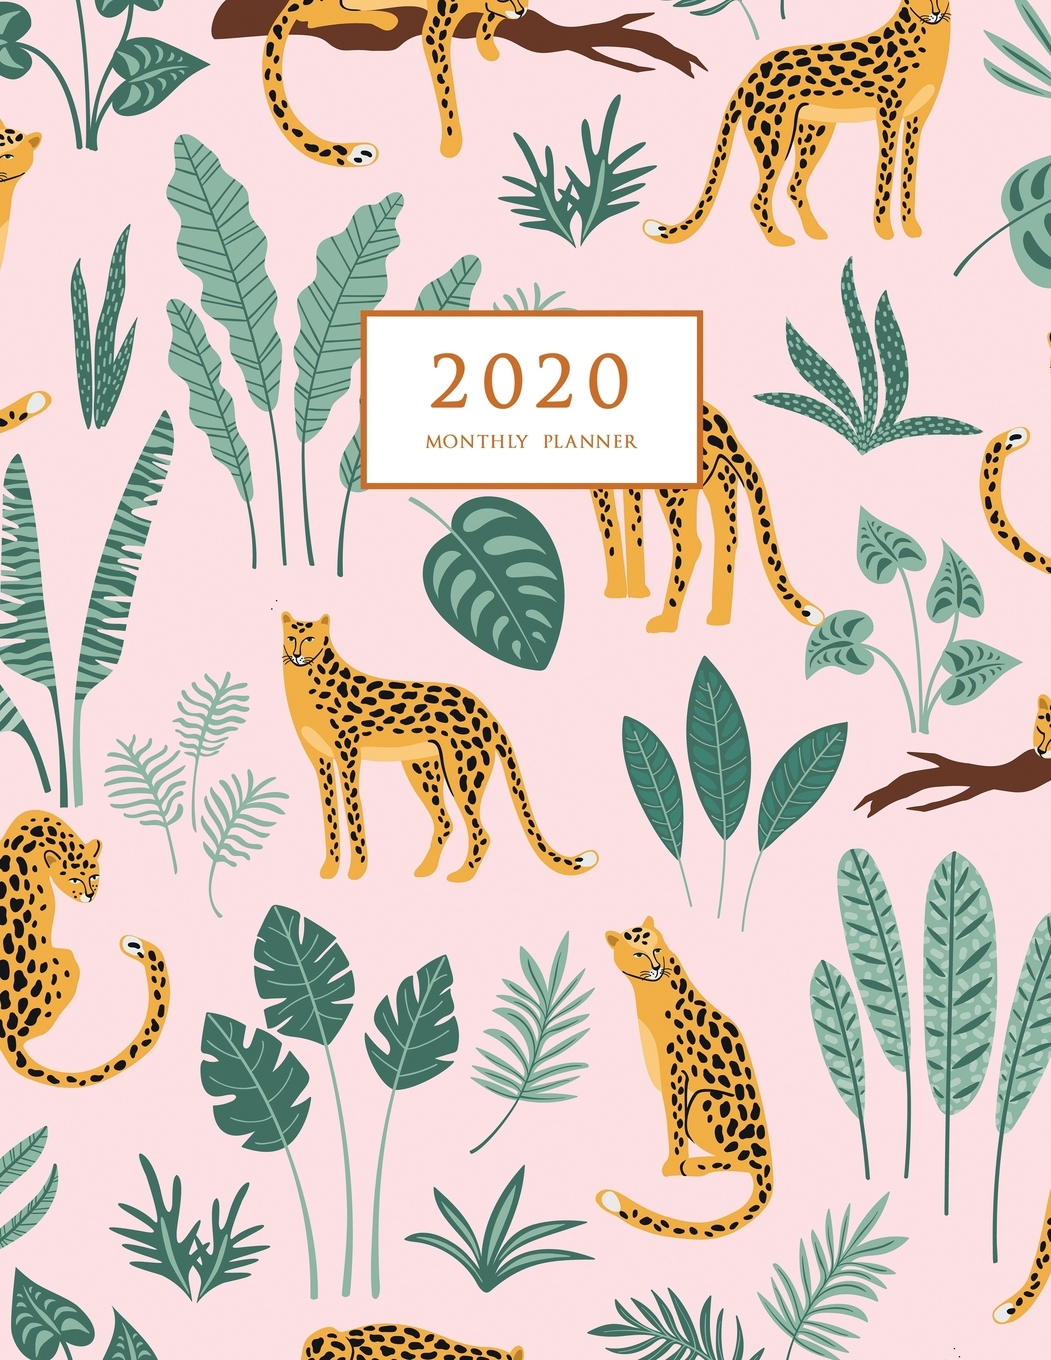 2020 Monthly Planner Large Monthly Planner With Inspirational Quotes Leopards And Tropical Leaves Paperback Walmart Com Walmart Com Take a vacation without leaving your home! walmart